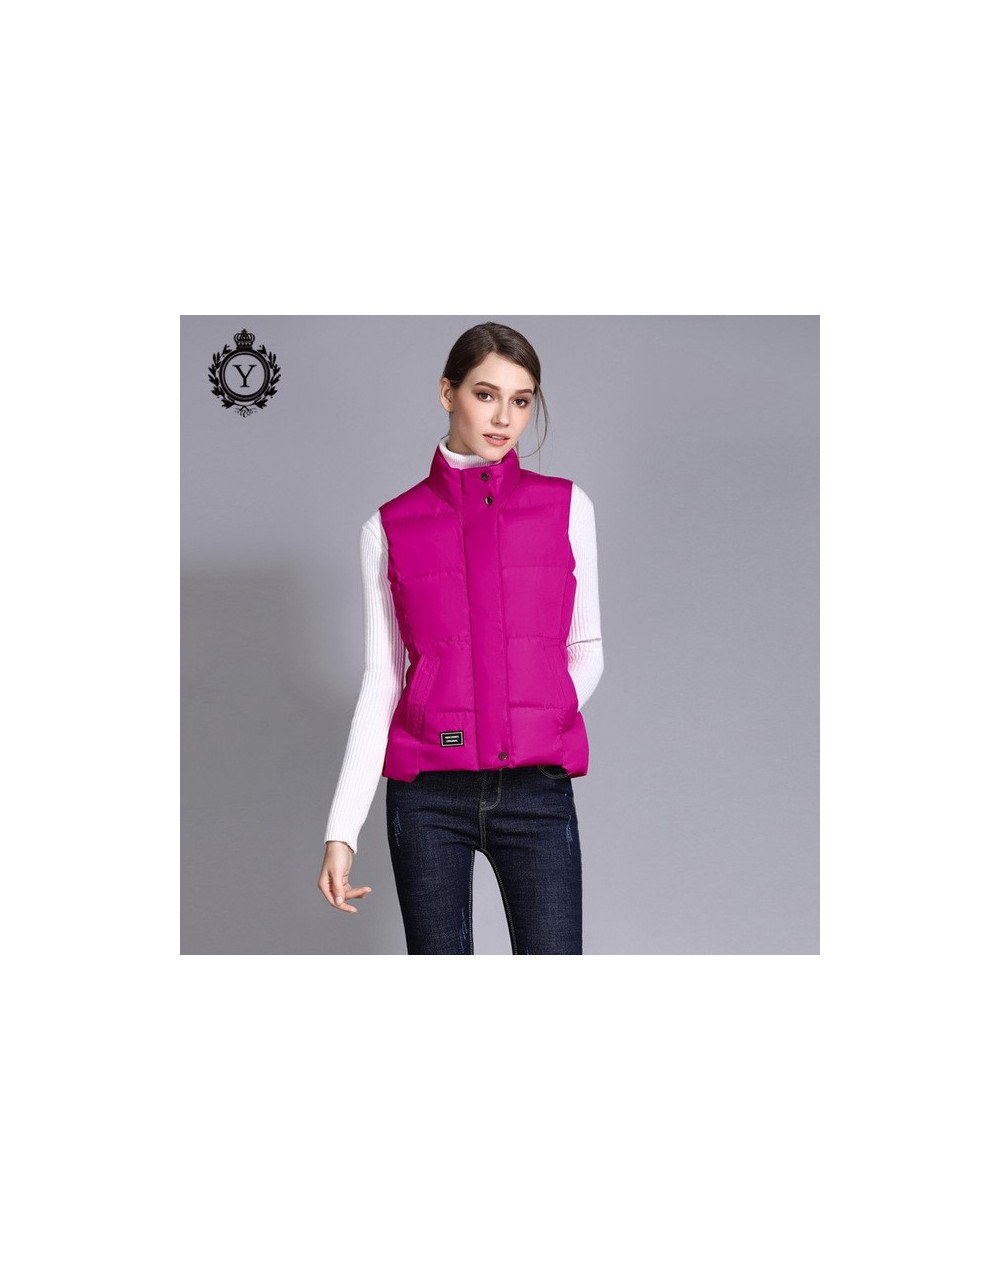 Women Vest Winter Stand Collar Sleeveless Jacket Coat Women Solid Color S-3XL Top Quality Bodywarmer Cotton Vest 2019 COUTUD...